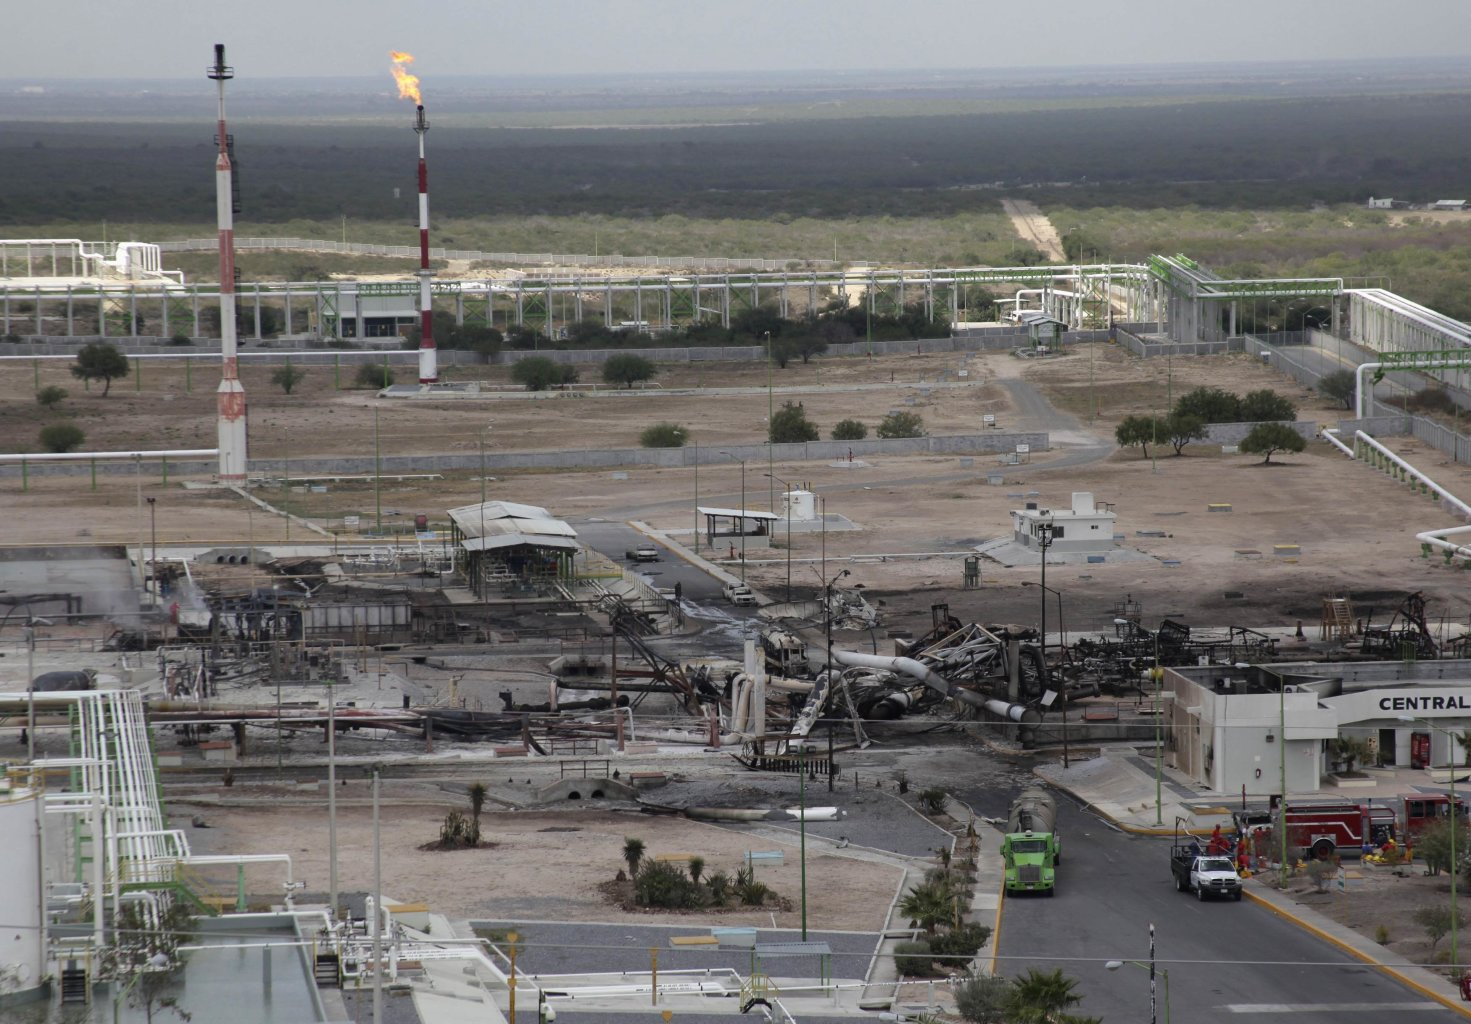 Burnt cars and gas storage tanks are seen at a gas facility of Pemex in Reynosa, September 18, 2012. Ten people were killed in a fire that broke out at a gas facility of Mexican state oil monopoly Pemex in the northern state of Tamaulipas. In a statement, Pemex said 10 of its workers had been killed at the gas compression station near the city of Reynosa on Tuesday. The cause of the blaze had not been determined but Pemex said the fire was extinguished by early Tuesday afternoon. The facility belongs to its exploration and production arm, PEP.The facility sends gas imports from the United States as well as domestic gas production from Mexico's Burgos fields to the industrial city of Monterrey. REUTERS/Daniel Becerril